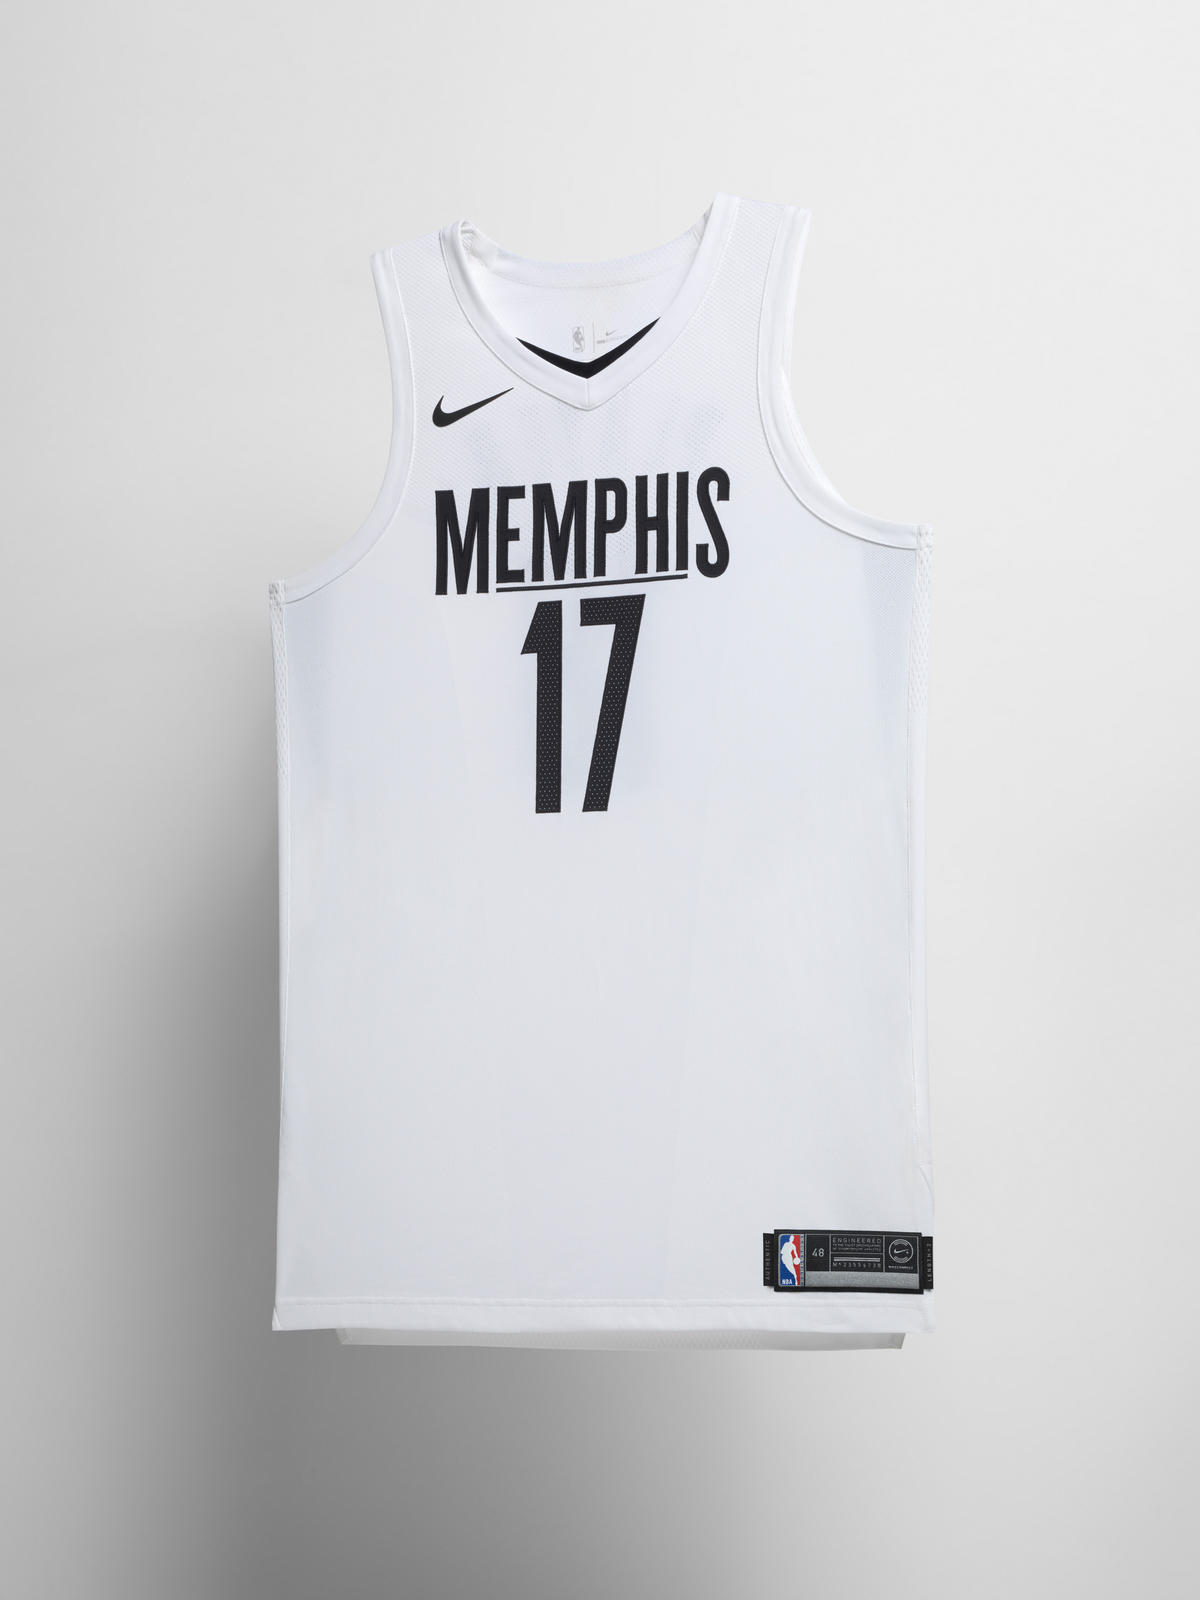 NBA City Edition jerseys: Photos of the final new Nike jersey | SI.com